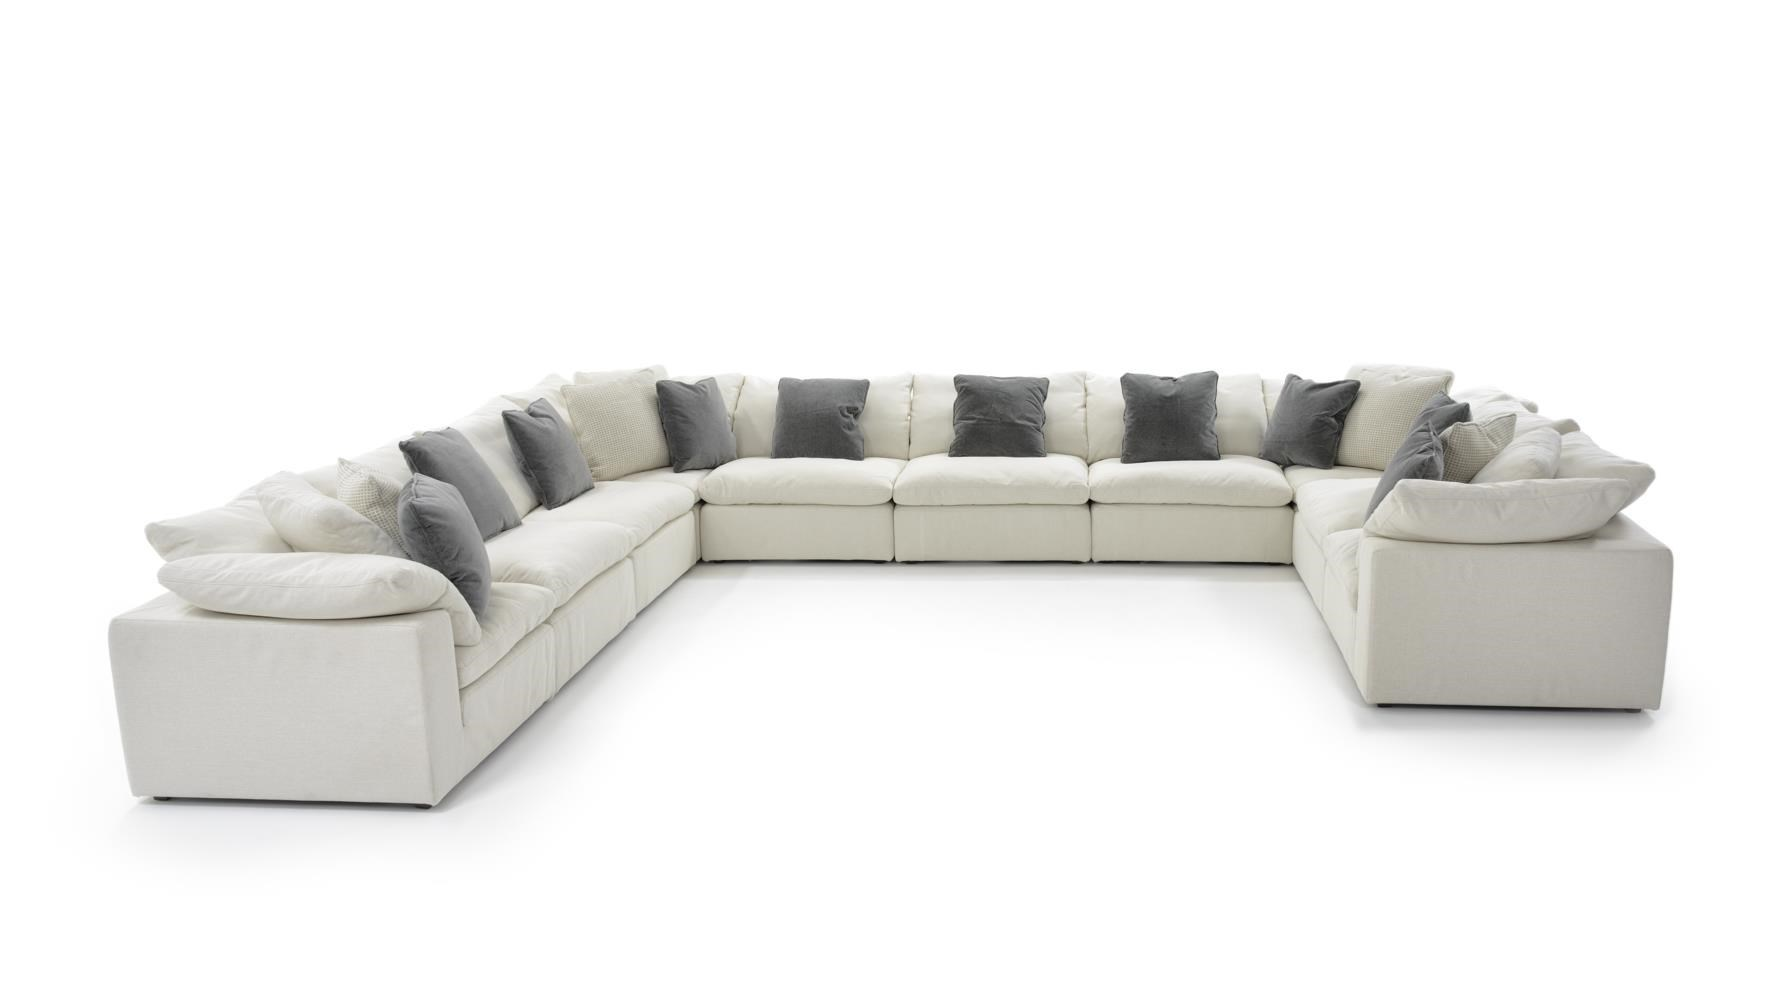 palmer sofa waterproof throw universal 6815 10 pc sect ten piece sectional group with thick track arms